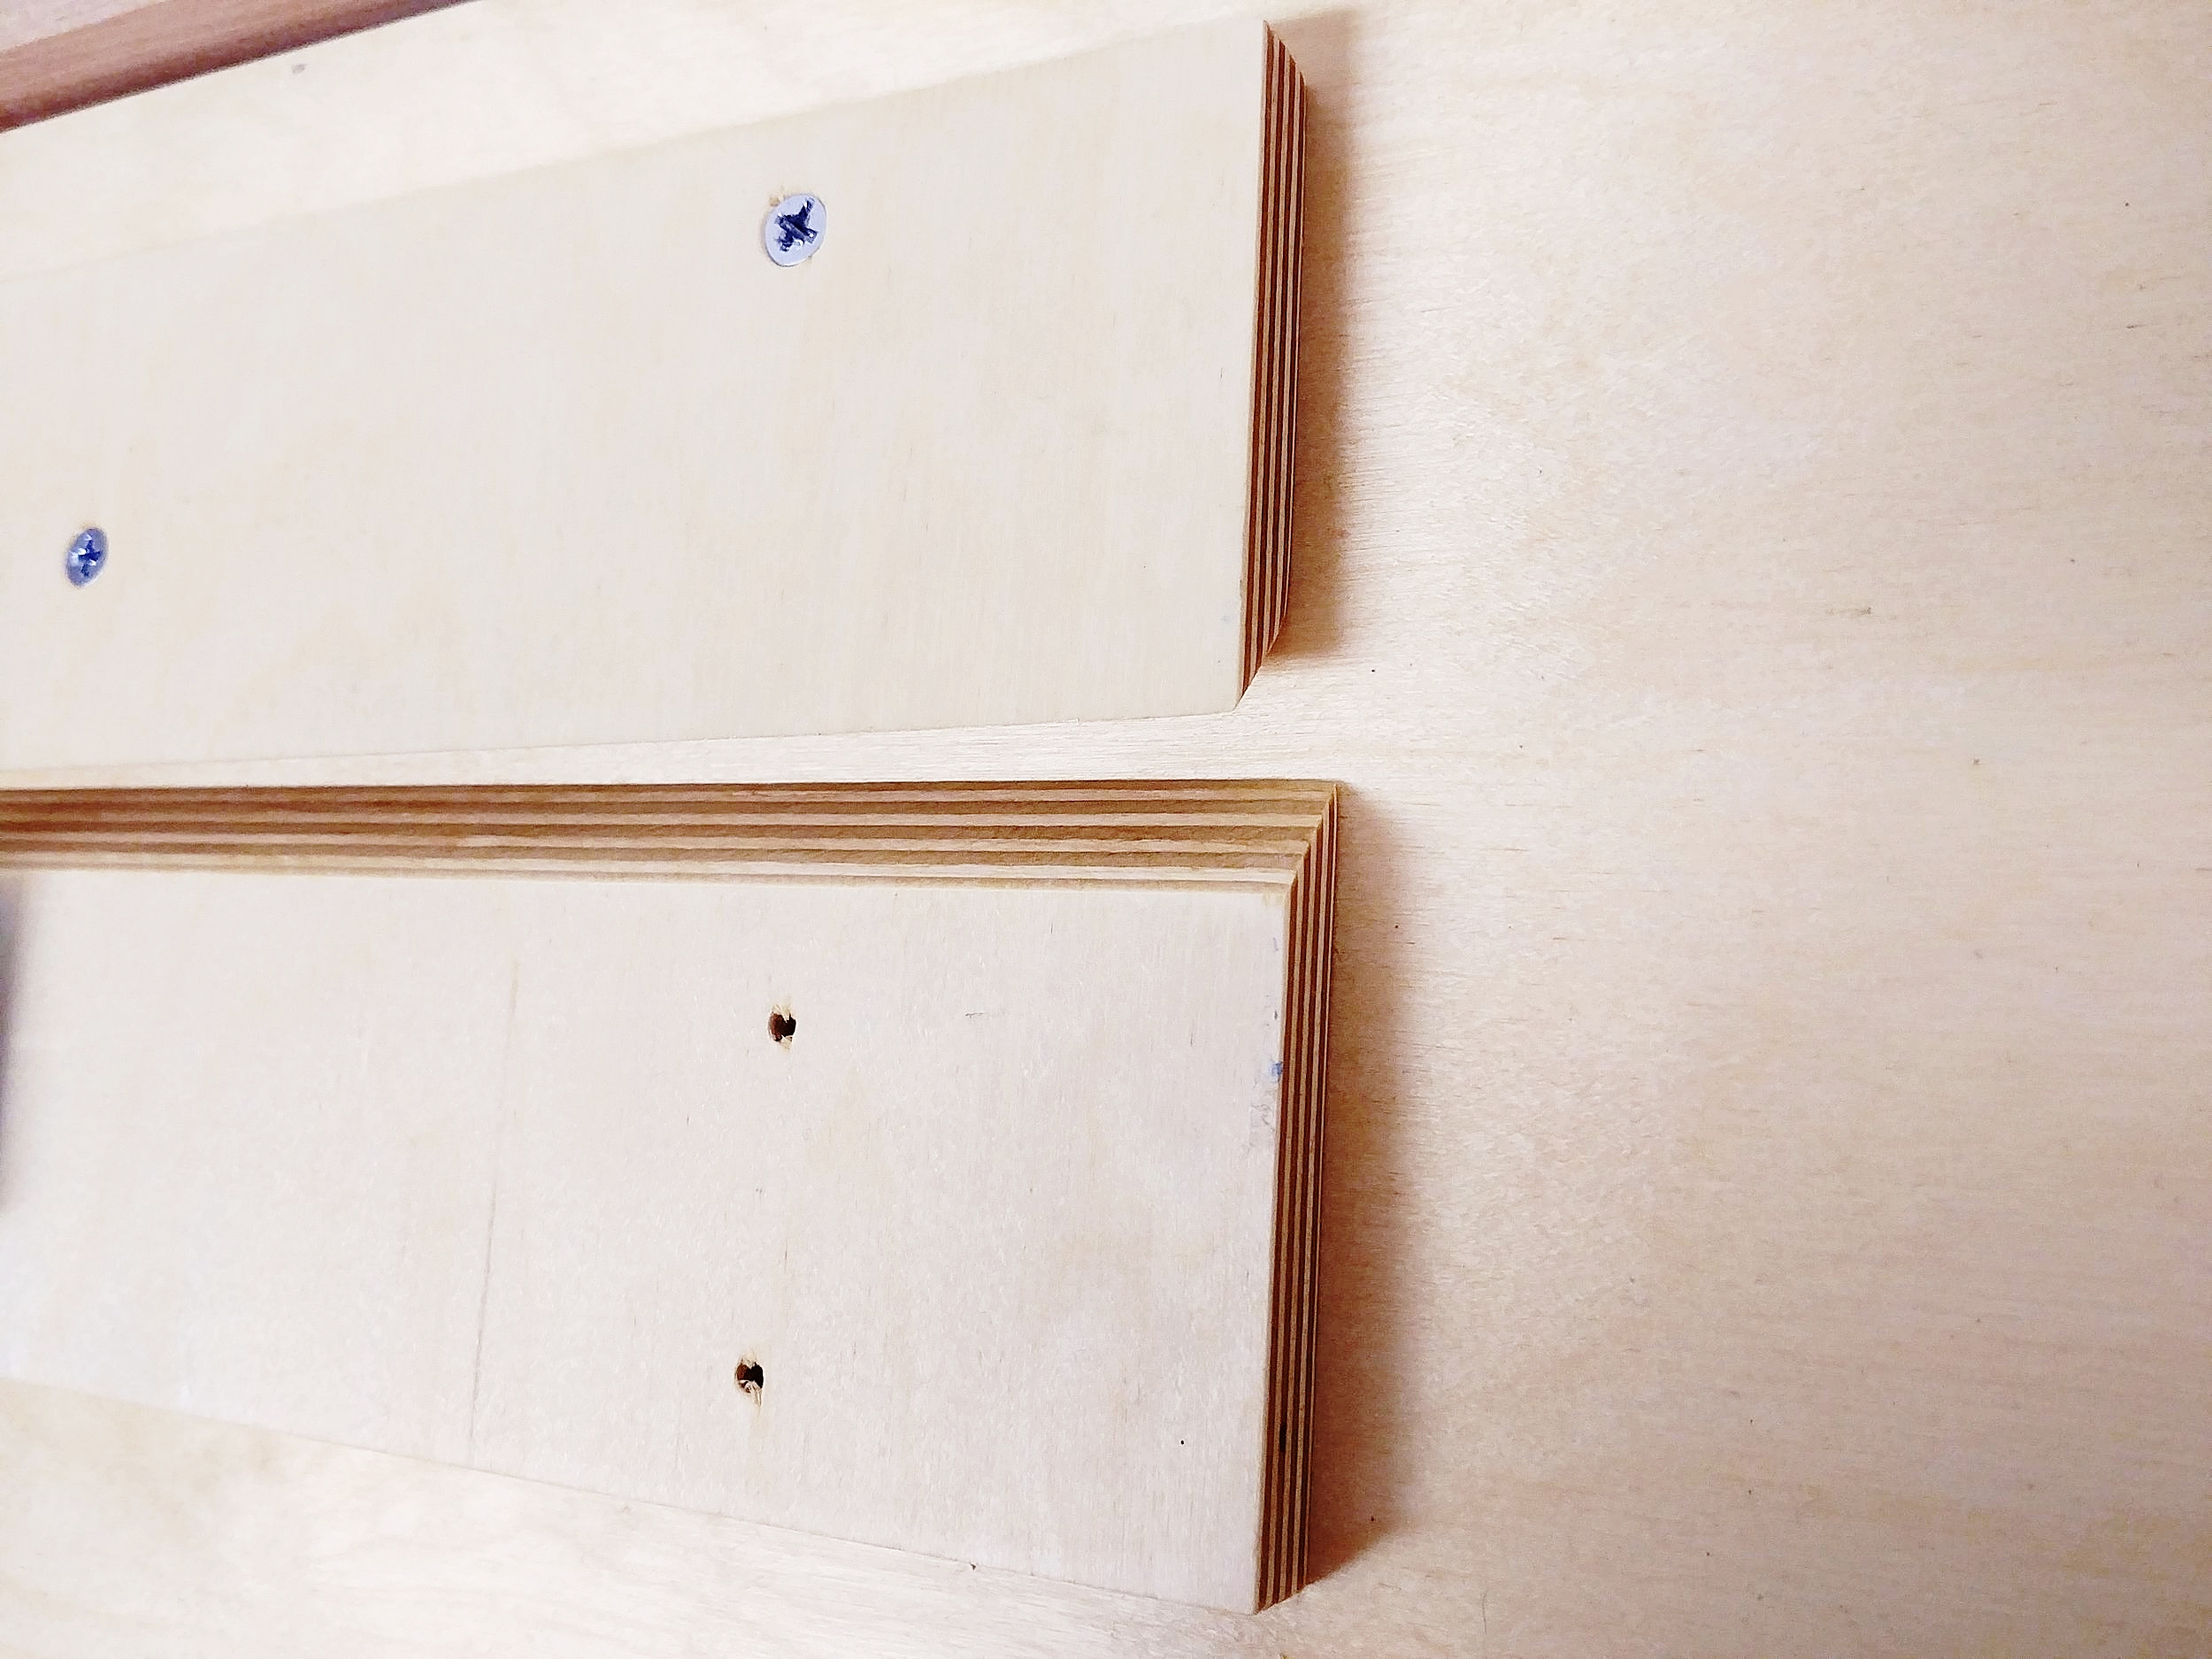 Fig 8 - Place Wall-Mount above Cleat Board